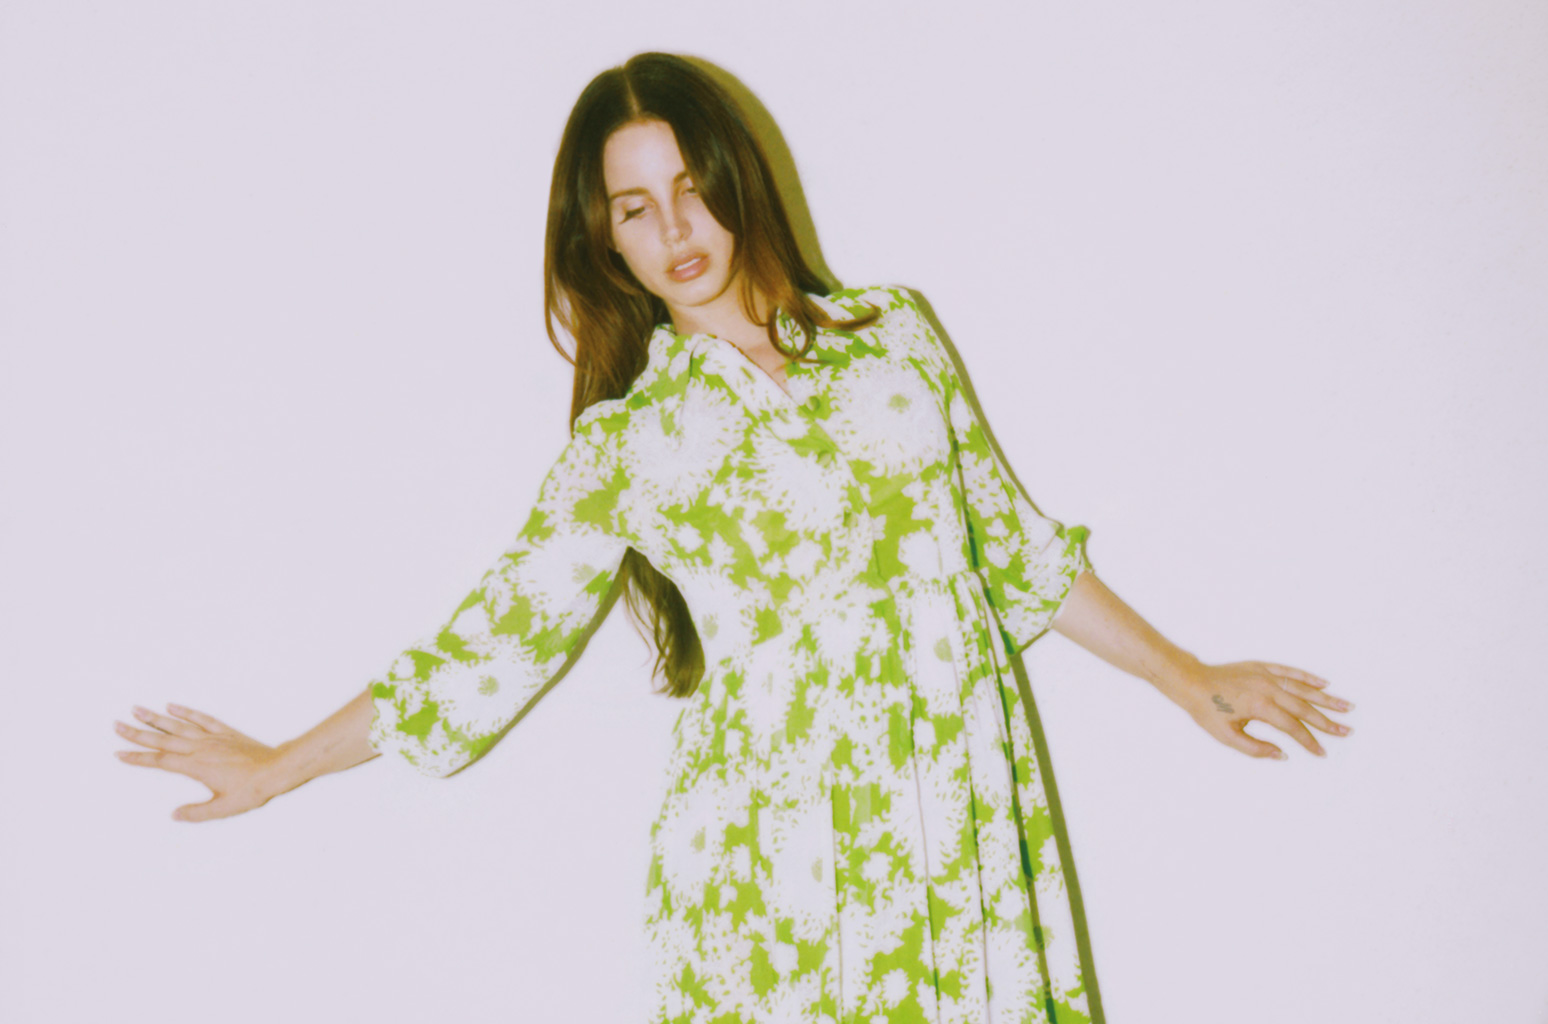 01-Lana-Del-Rey-cr-Neil-Krug-2017-press-photos-billboard-1548